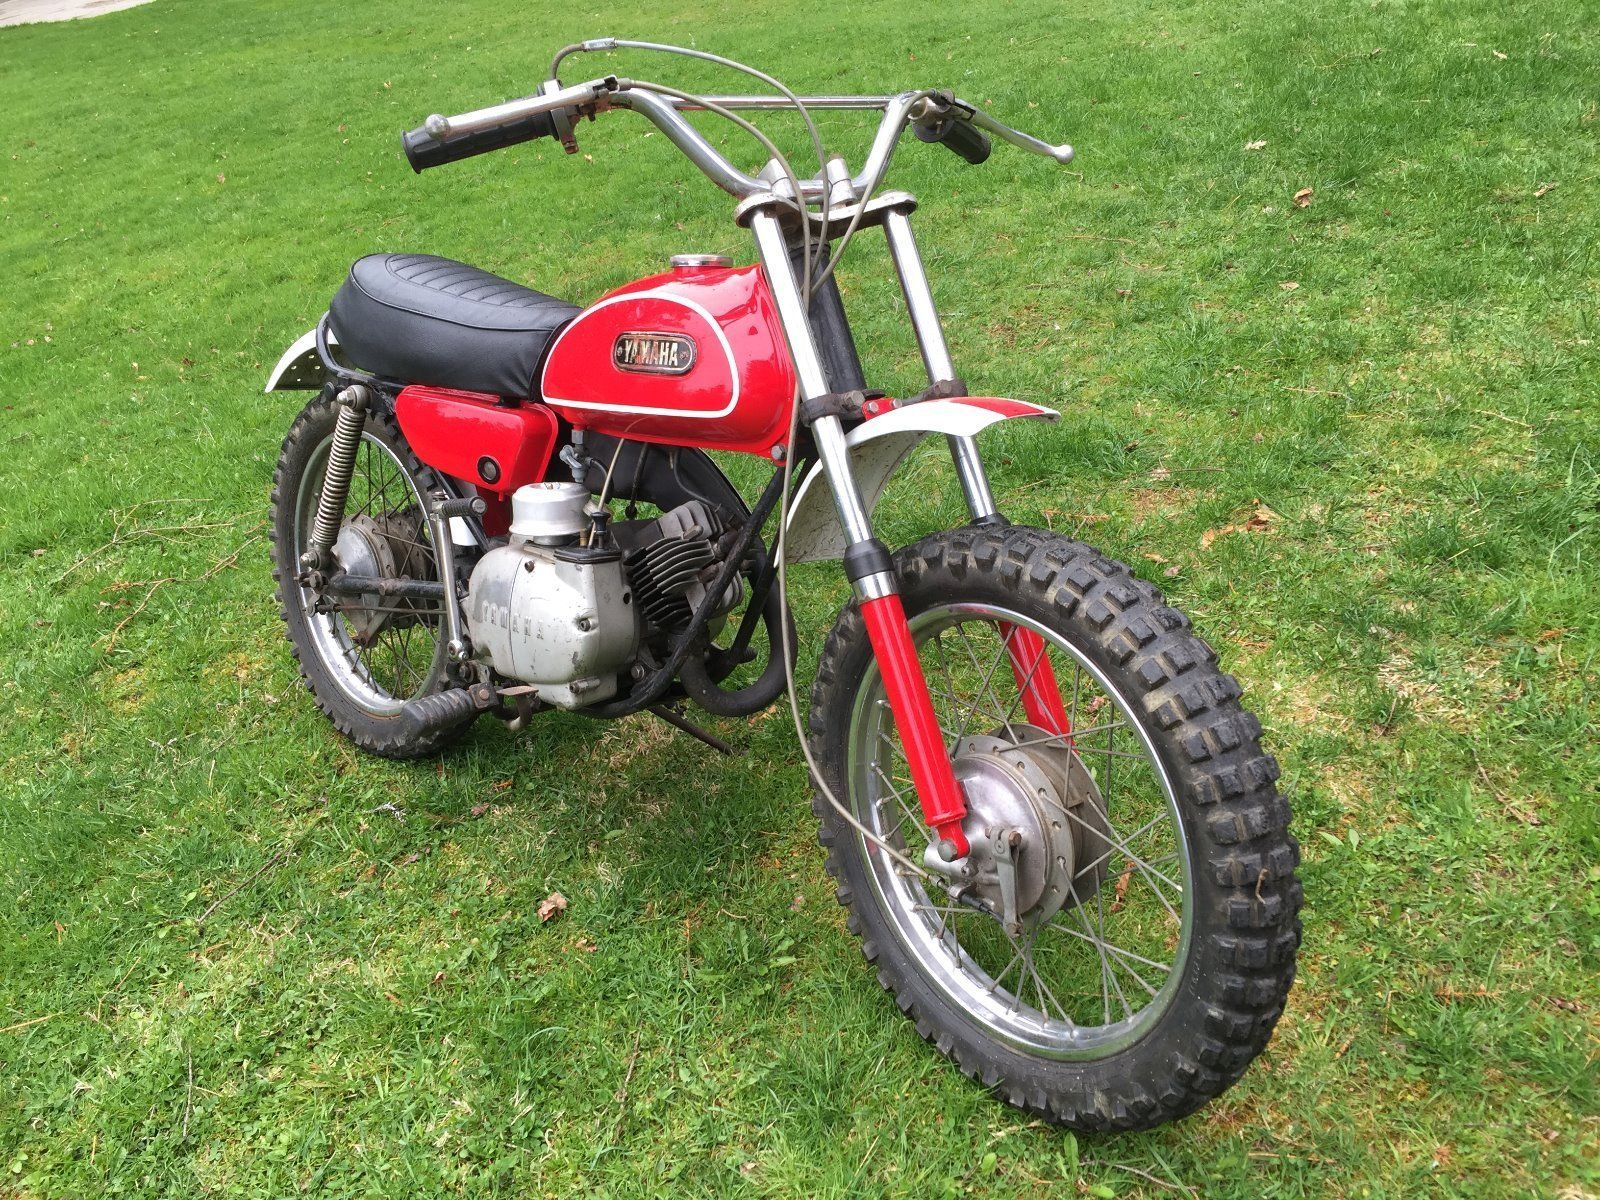 1971 yamaha jt1 mini enduro 60 ahrma vintage dirt bike trail ebay 1971 yamaha jt1. Black Bedroom Furniture Sets. Home Design Ideas